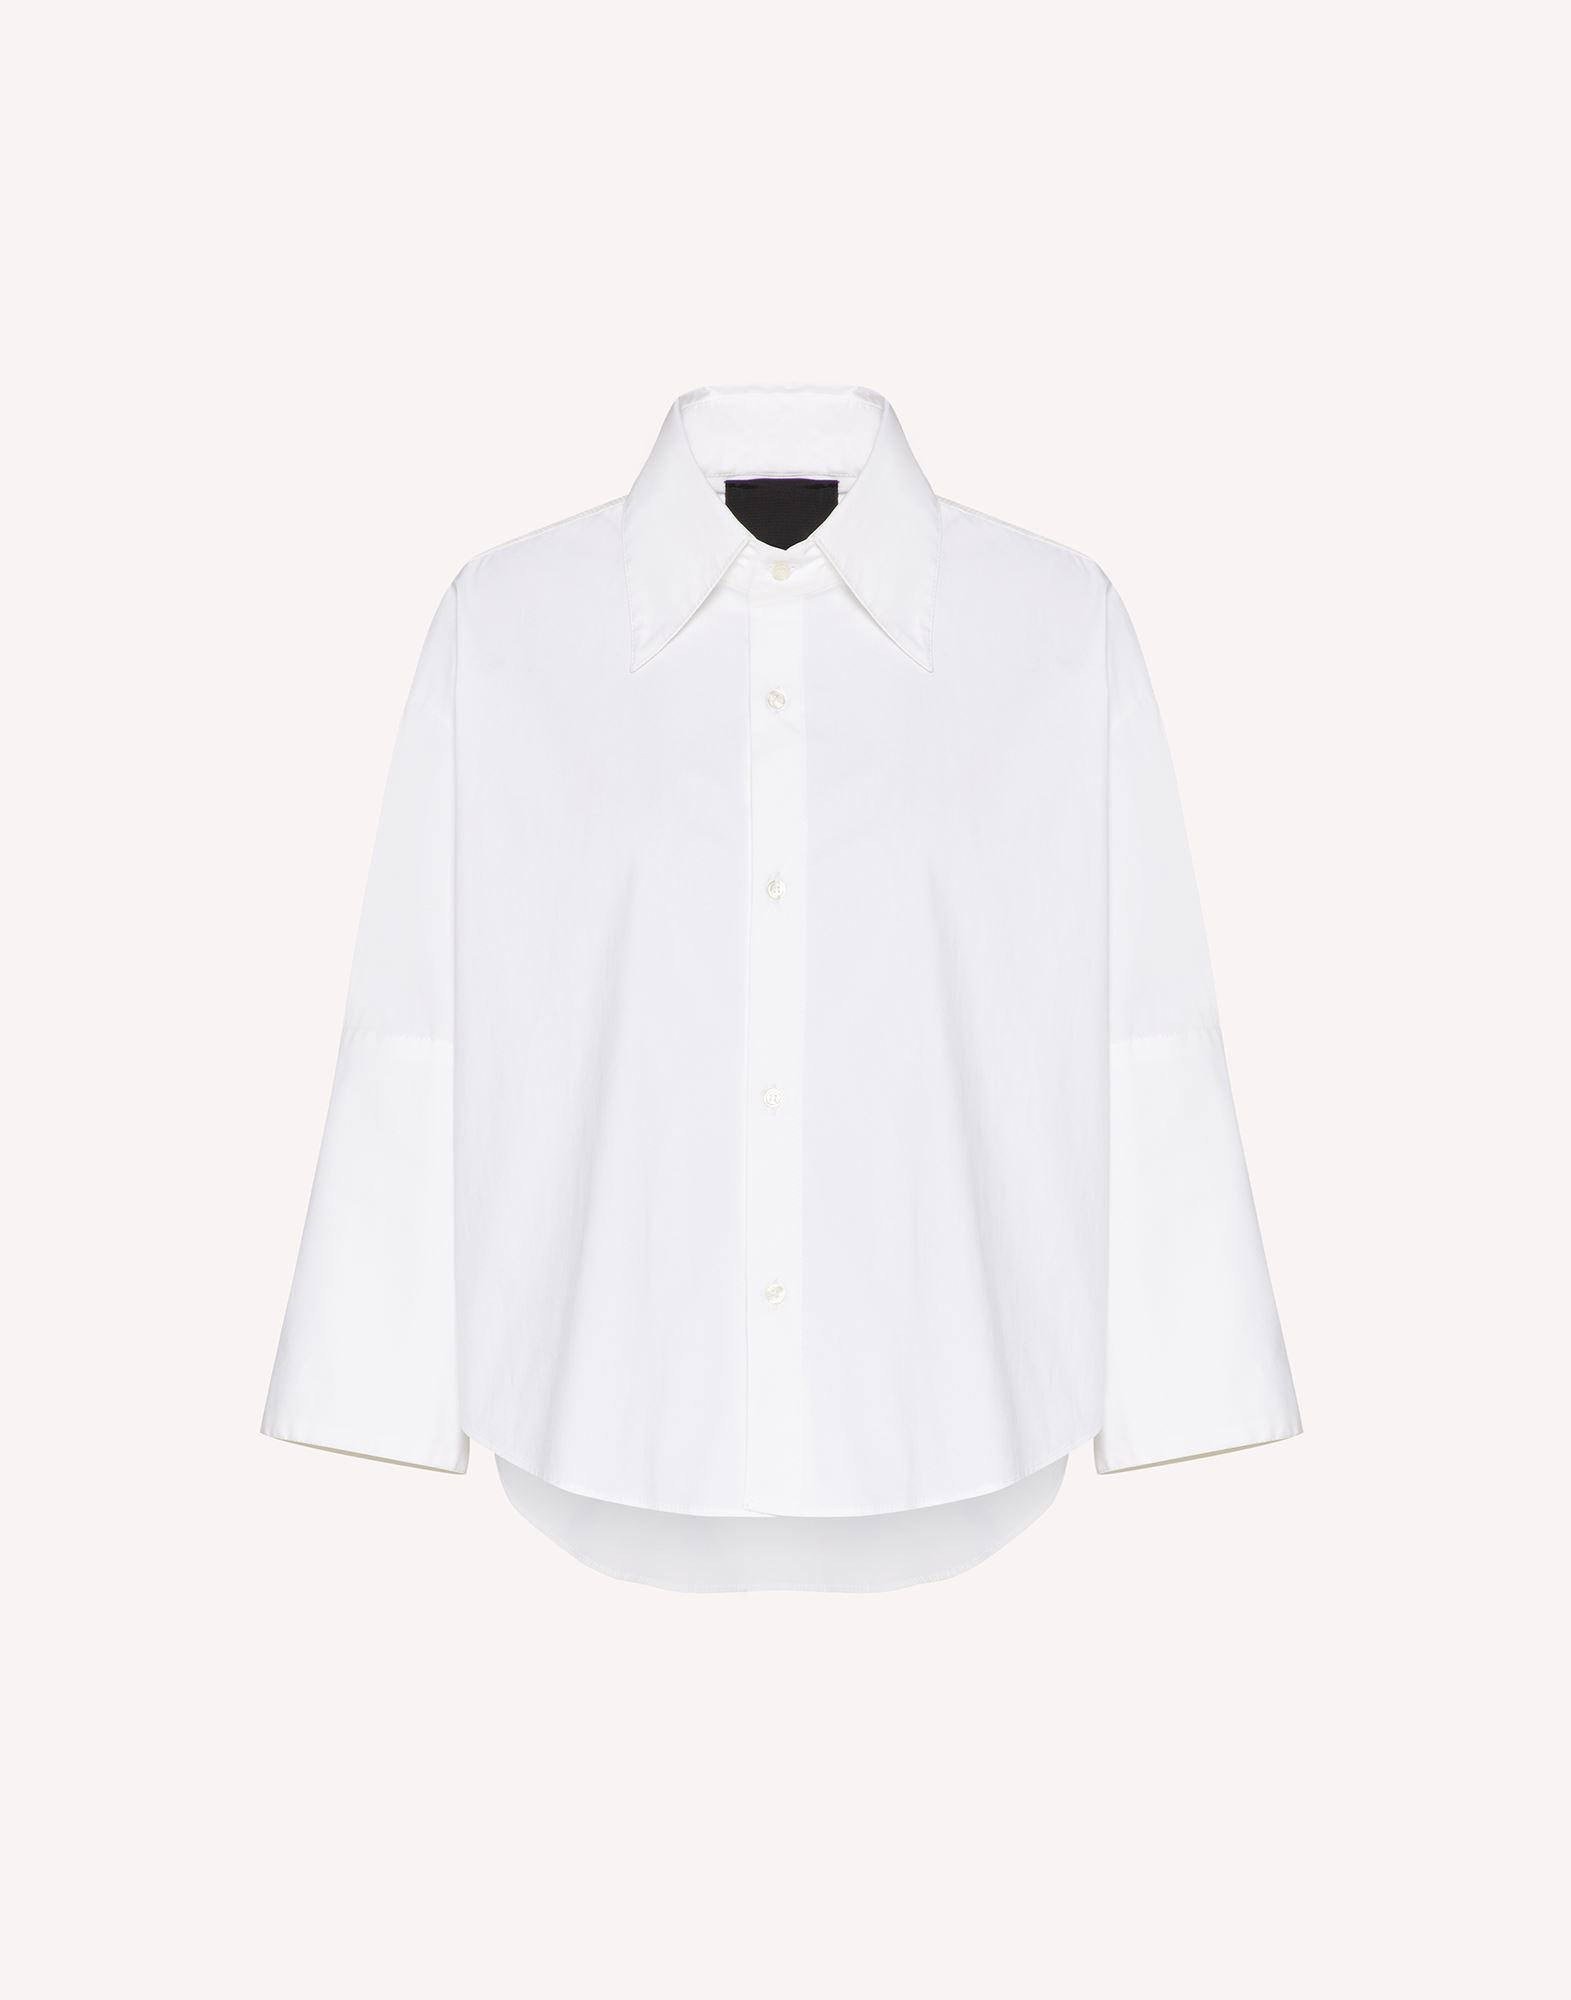 THE BLACK TAG. - COTTON POPLIN SHIRT WITH POINT D'ESPRIT TULLE 4